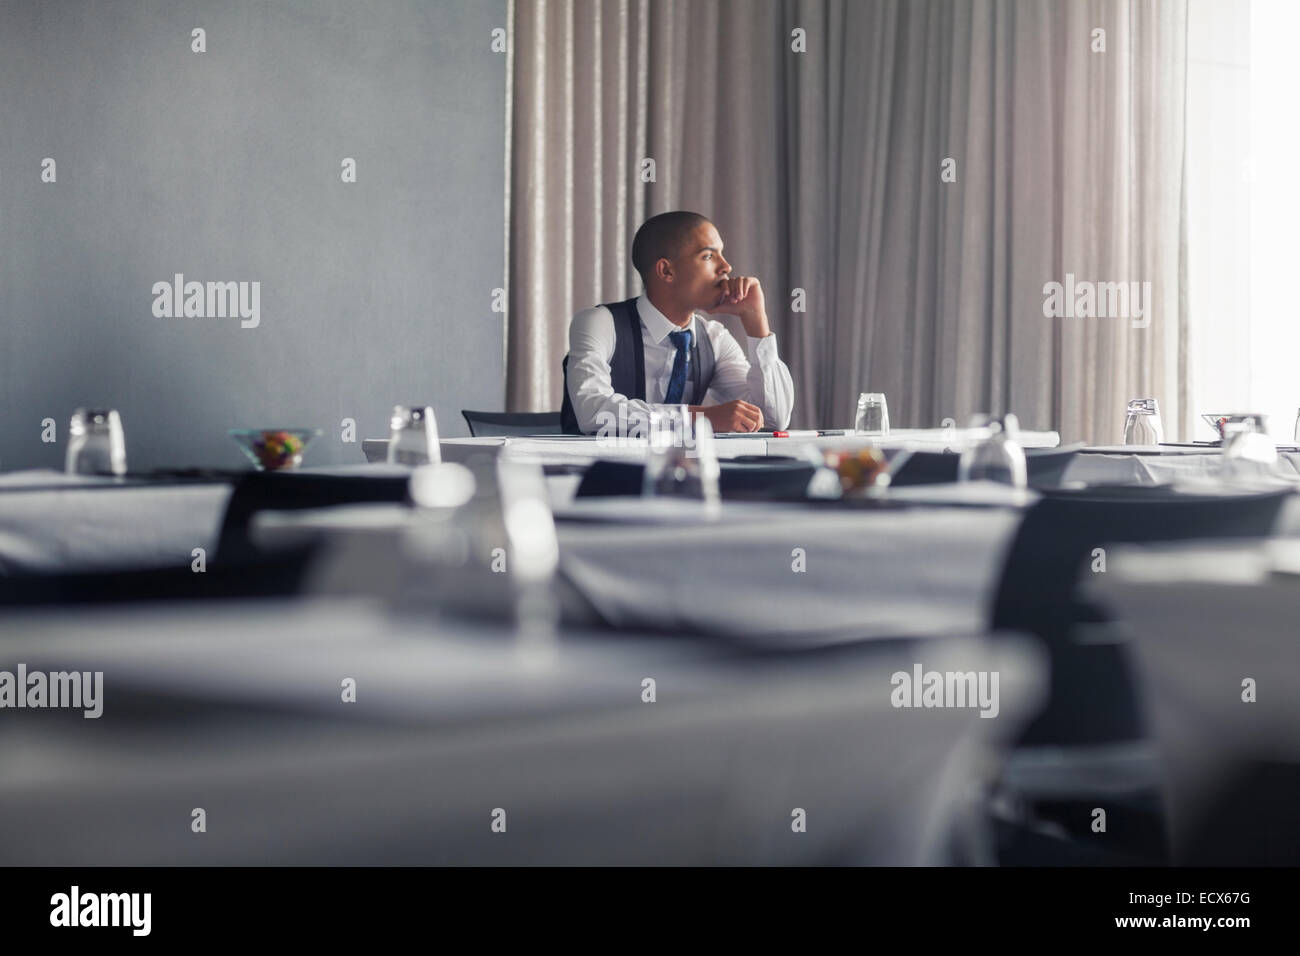 Portrait of young man sitting at table in empty conference room looking through window - Stock Image